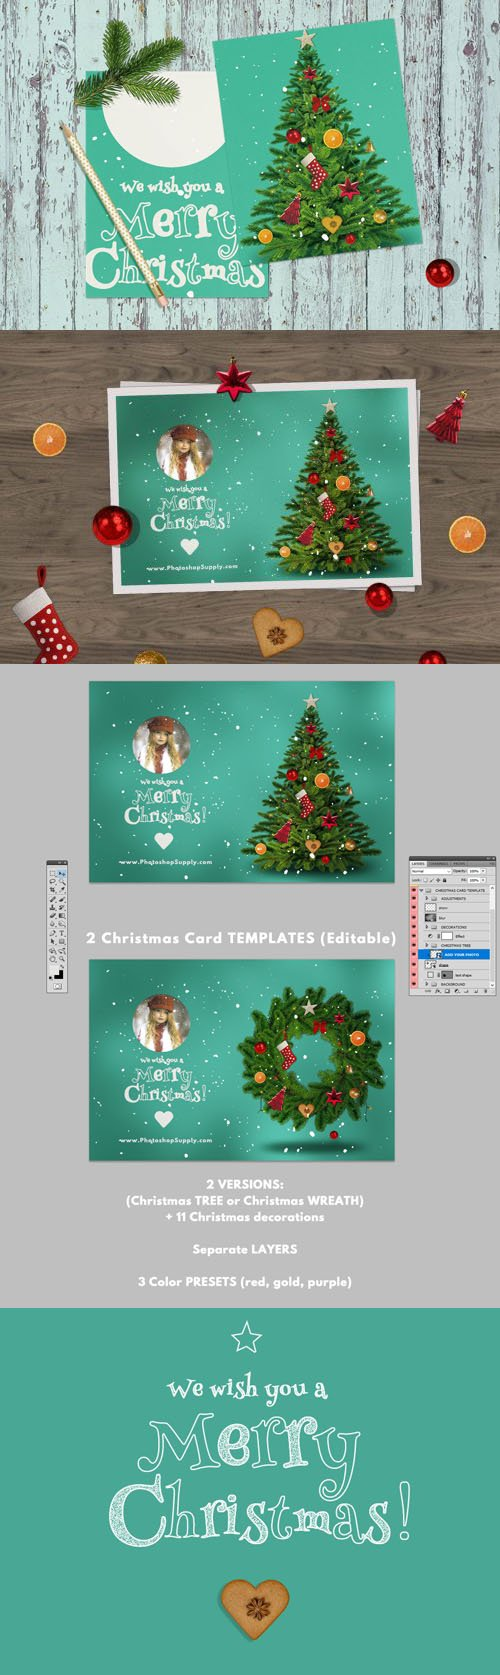 Christmas Card PSD Templates for Photoshop